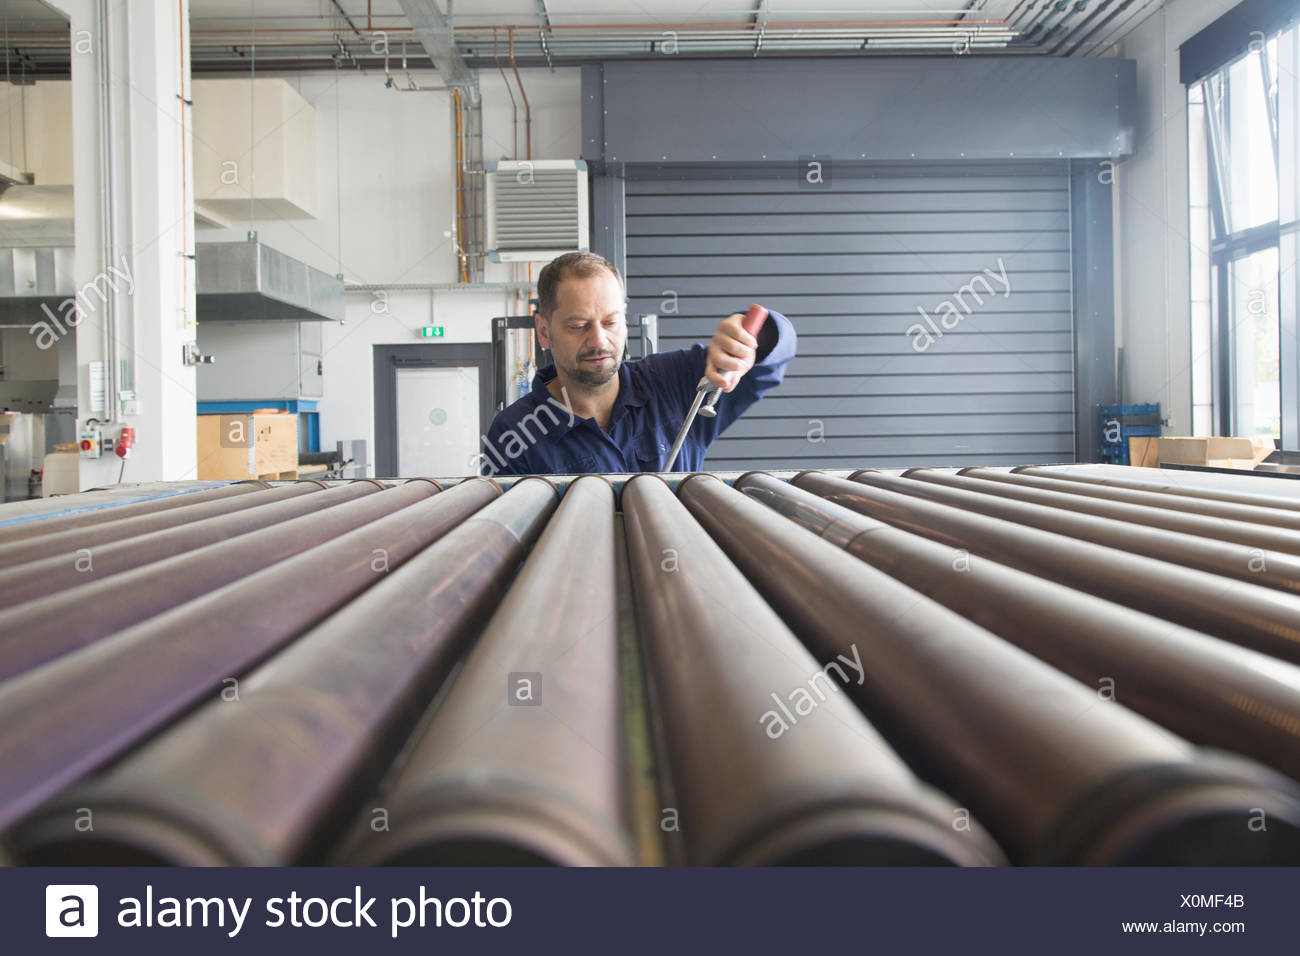 Worker in industrial plant - Stock Image